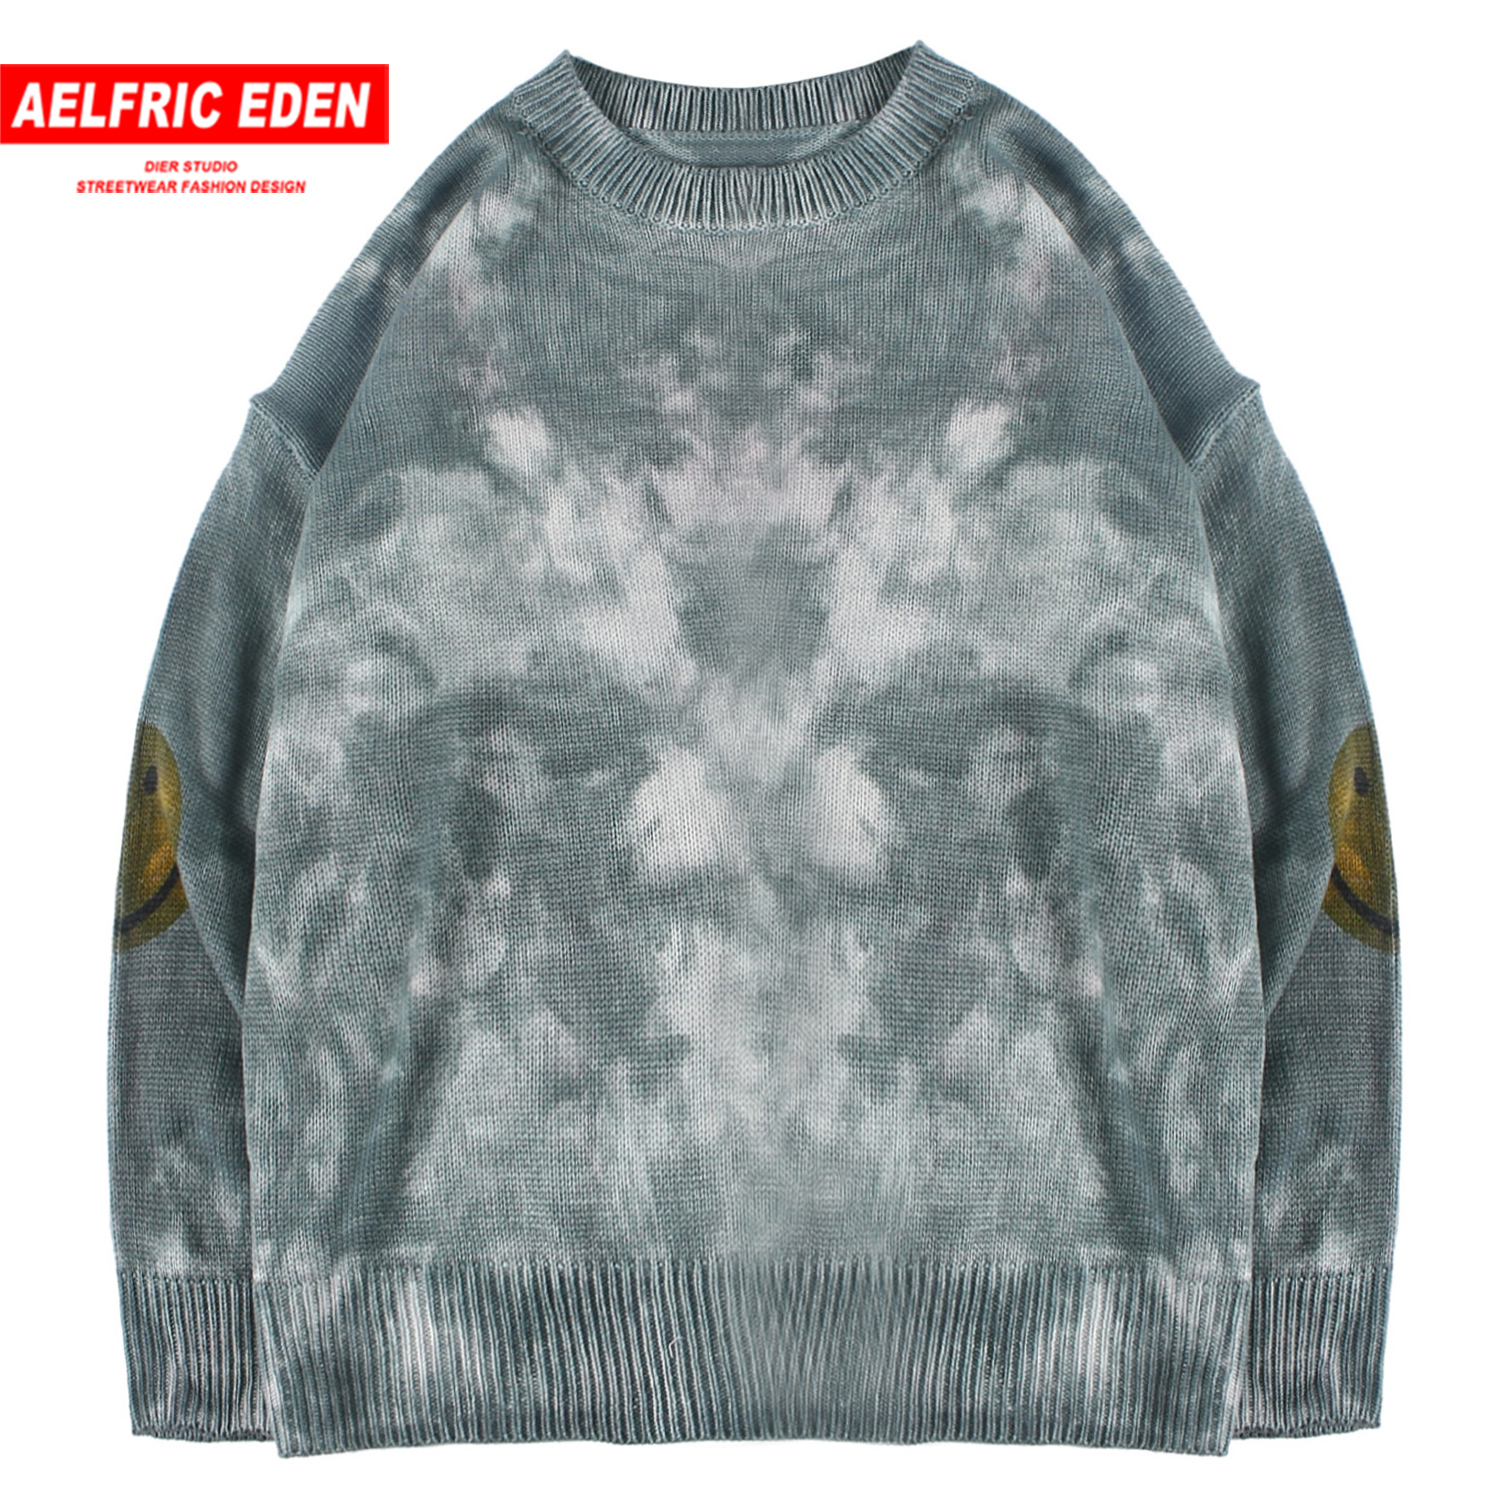 Aelfric Eden Hip Hop Tie Dyeing Knitwear Mens Sweaters 2019 Harajuku Fashion Male Oversized Male Tops Casual Streetwear Pullover